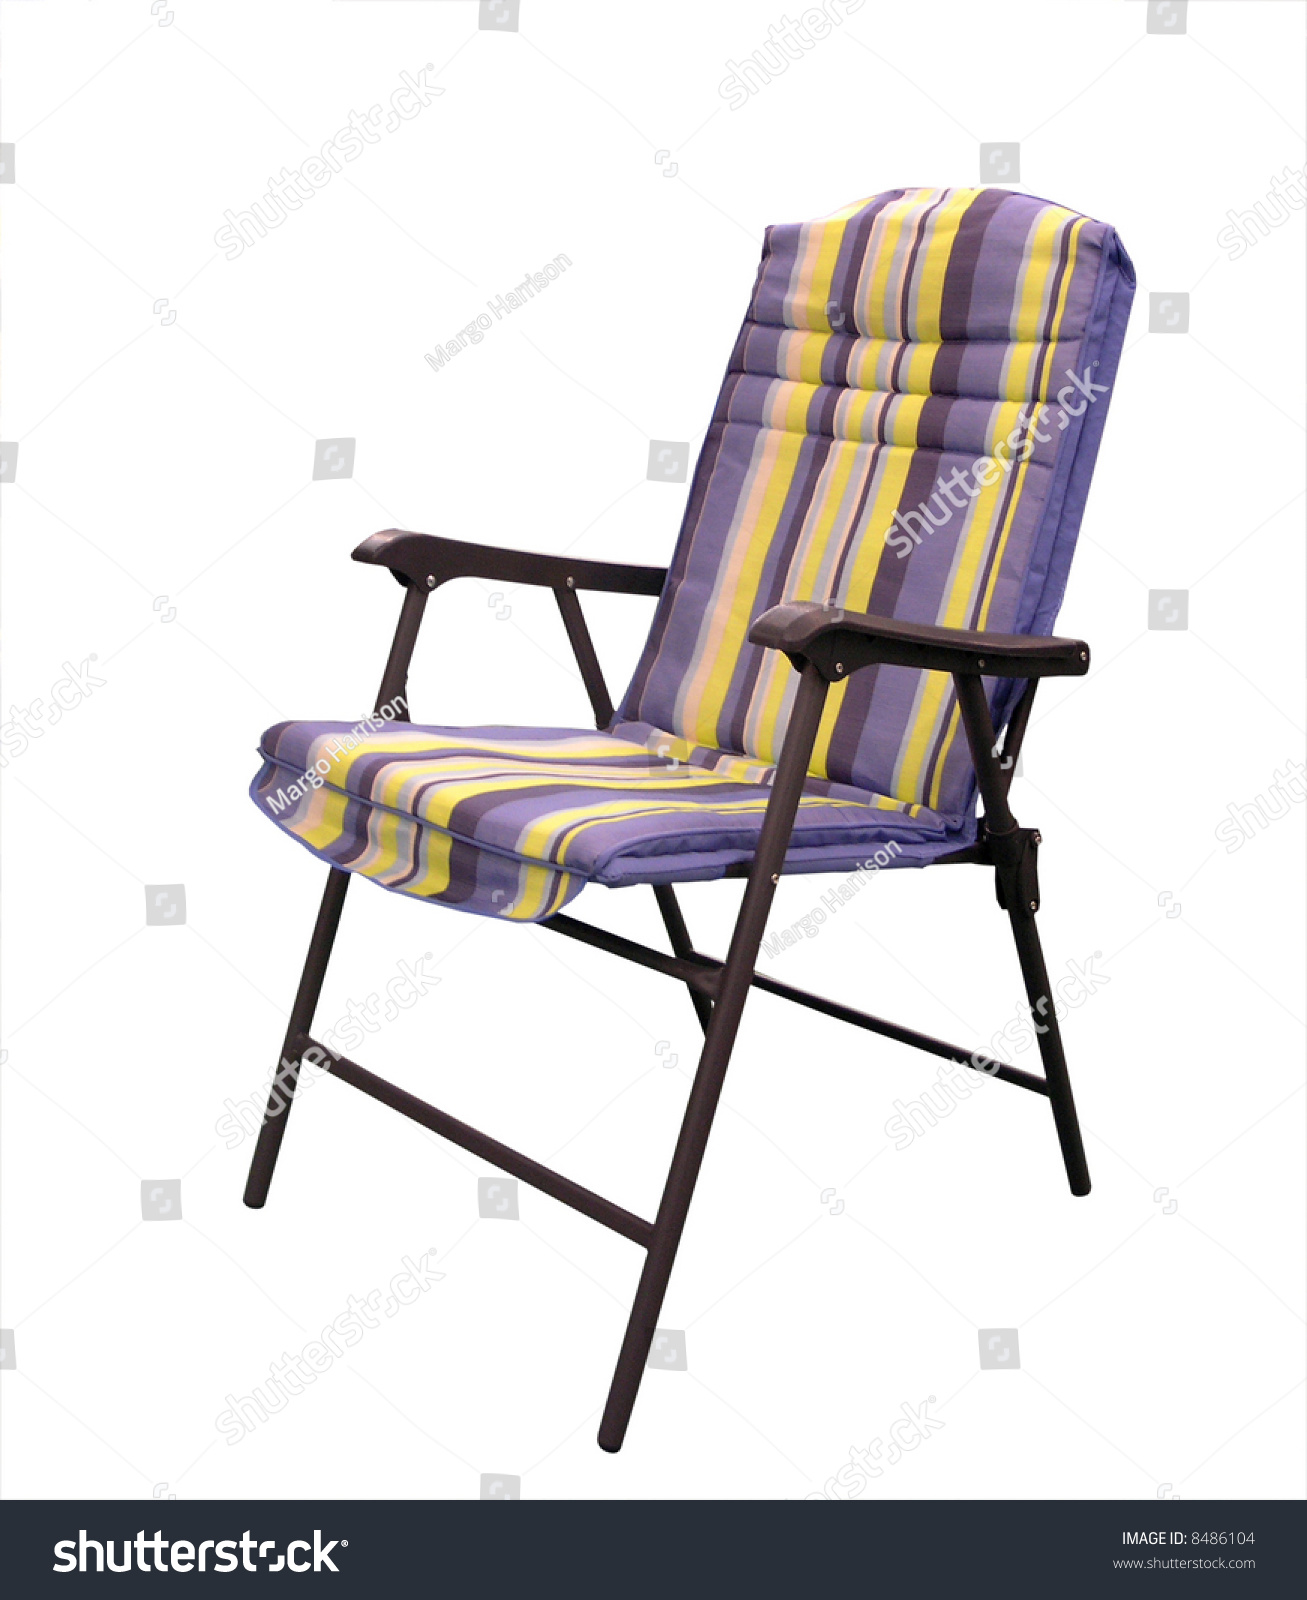 Folding Padded Patio Chair Stock Photo 8486104 Shutterstock